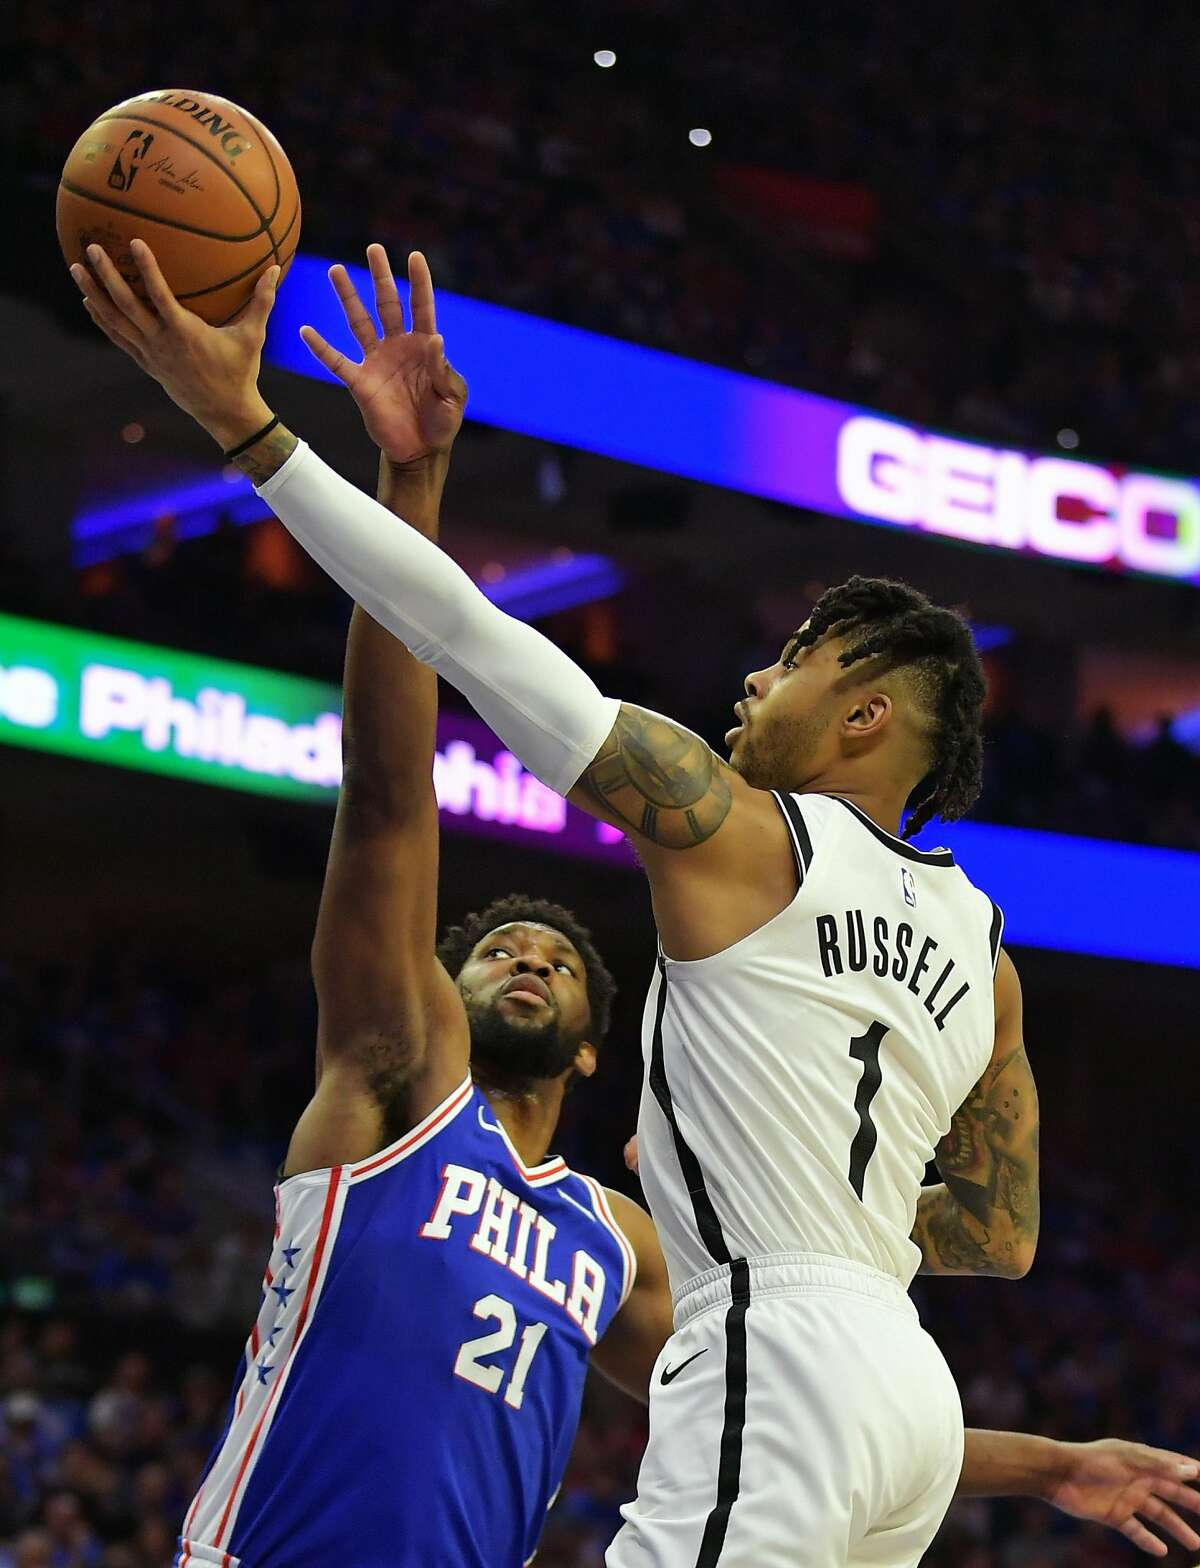 PHILADELPHIA, PA - APRIL 13: D'Angelo Russell #1 of the Brooklyn Nets lays up a shot past Joel Embiid #21 of the Philadelphia 76ers in the first half during Game One of the first round of the 2019 NBA Playoff at Wells Fargo Center on April 13, 2019 in Philadelphia, Pennsylvania. NOTE TO USER: User expressly acknowledges and agrees that, by downloading and or using this photograph, User is consenting to the terms and conditions of the Getty Images License Agreement. (Photo by Drew Hallowell/Getty Images)